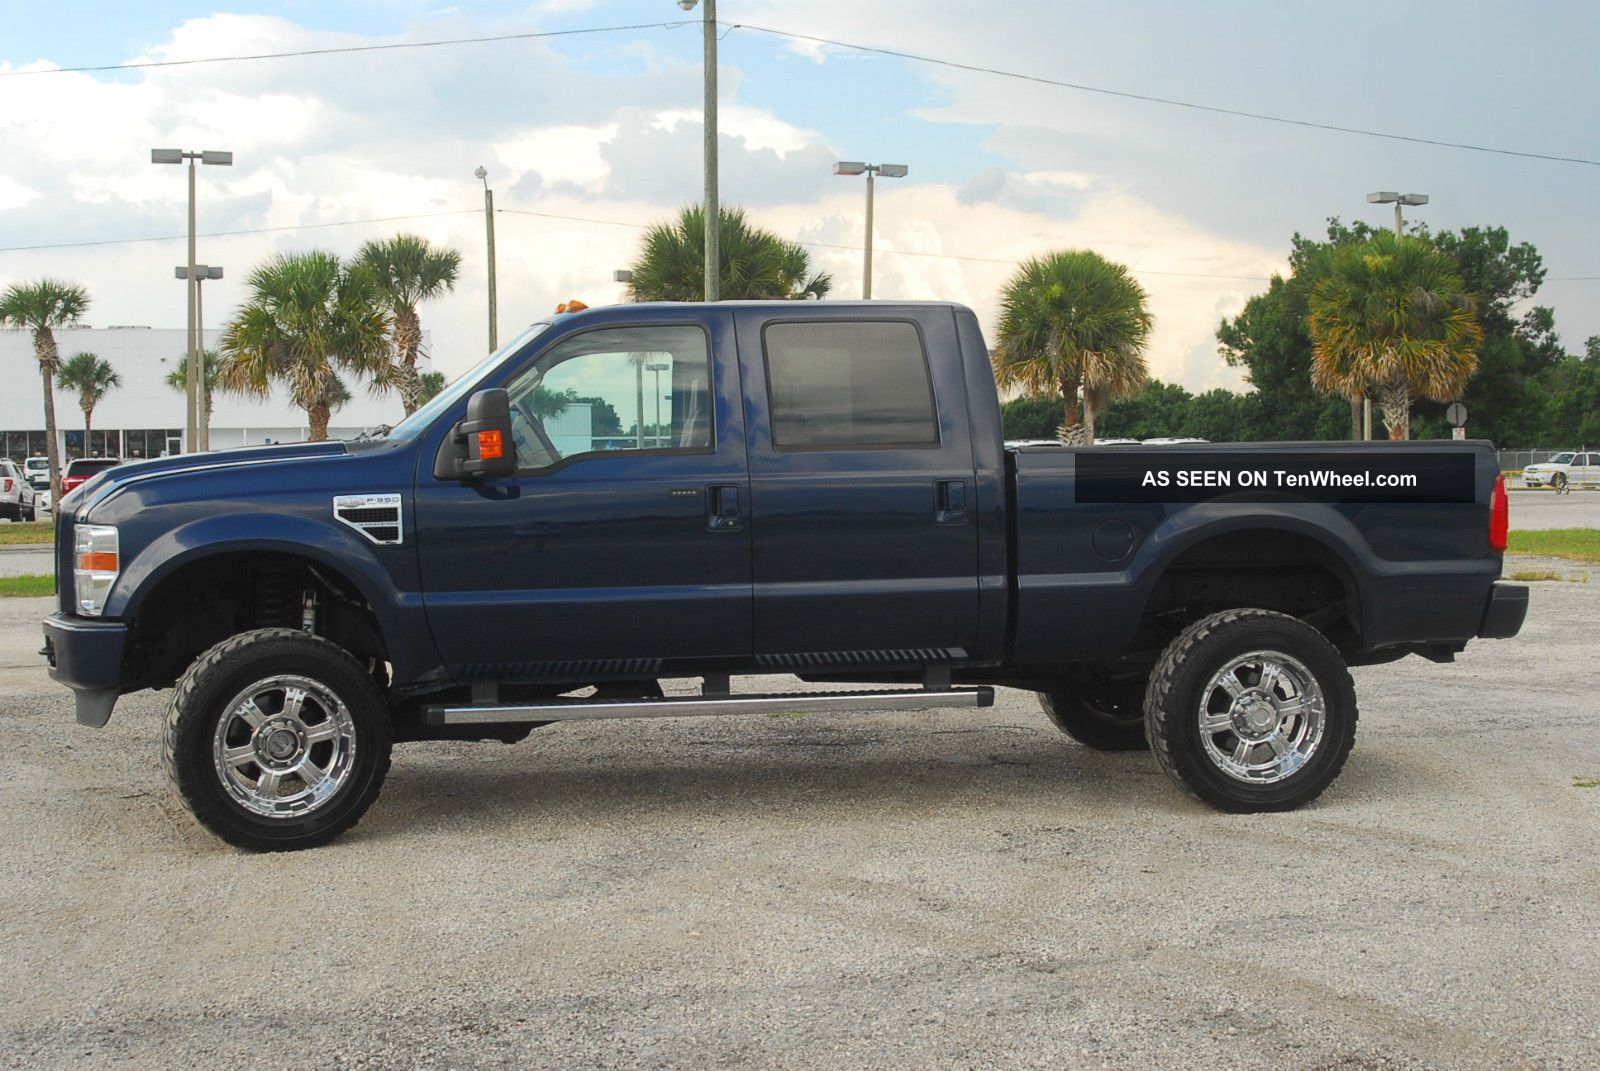 2008 ford f 250 duty king ranch crew cab short bed 6 4 diesel 4x4 custom. Black Bedroom Furniture Sets. Home Design Ideas